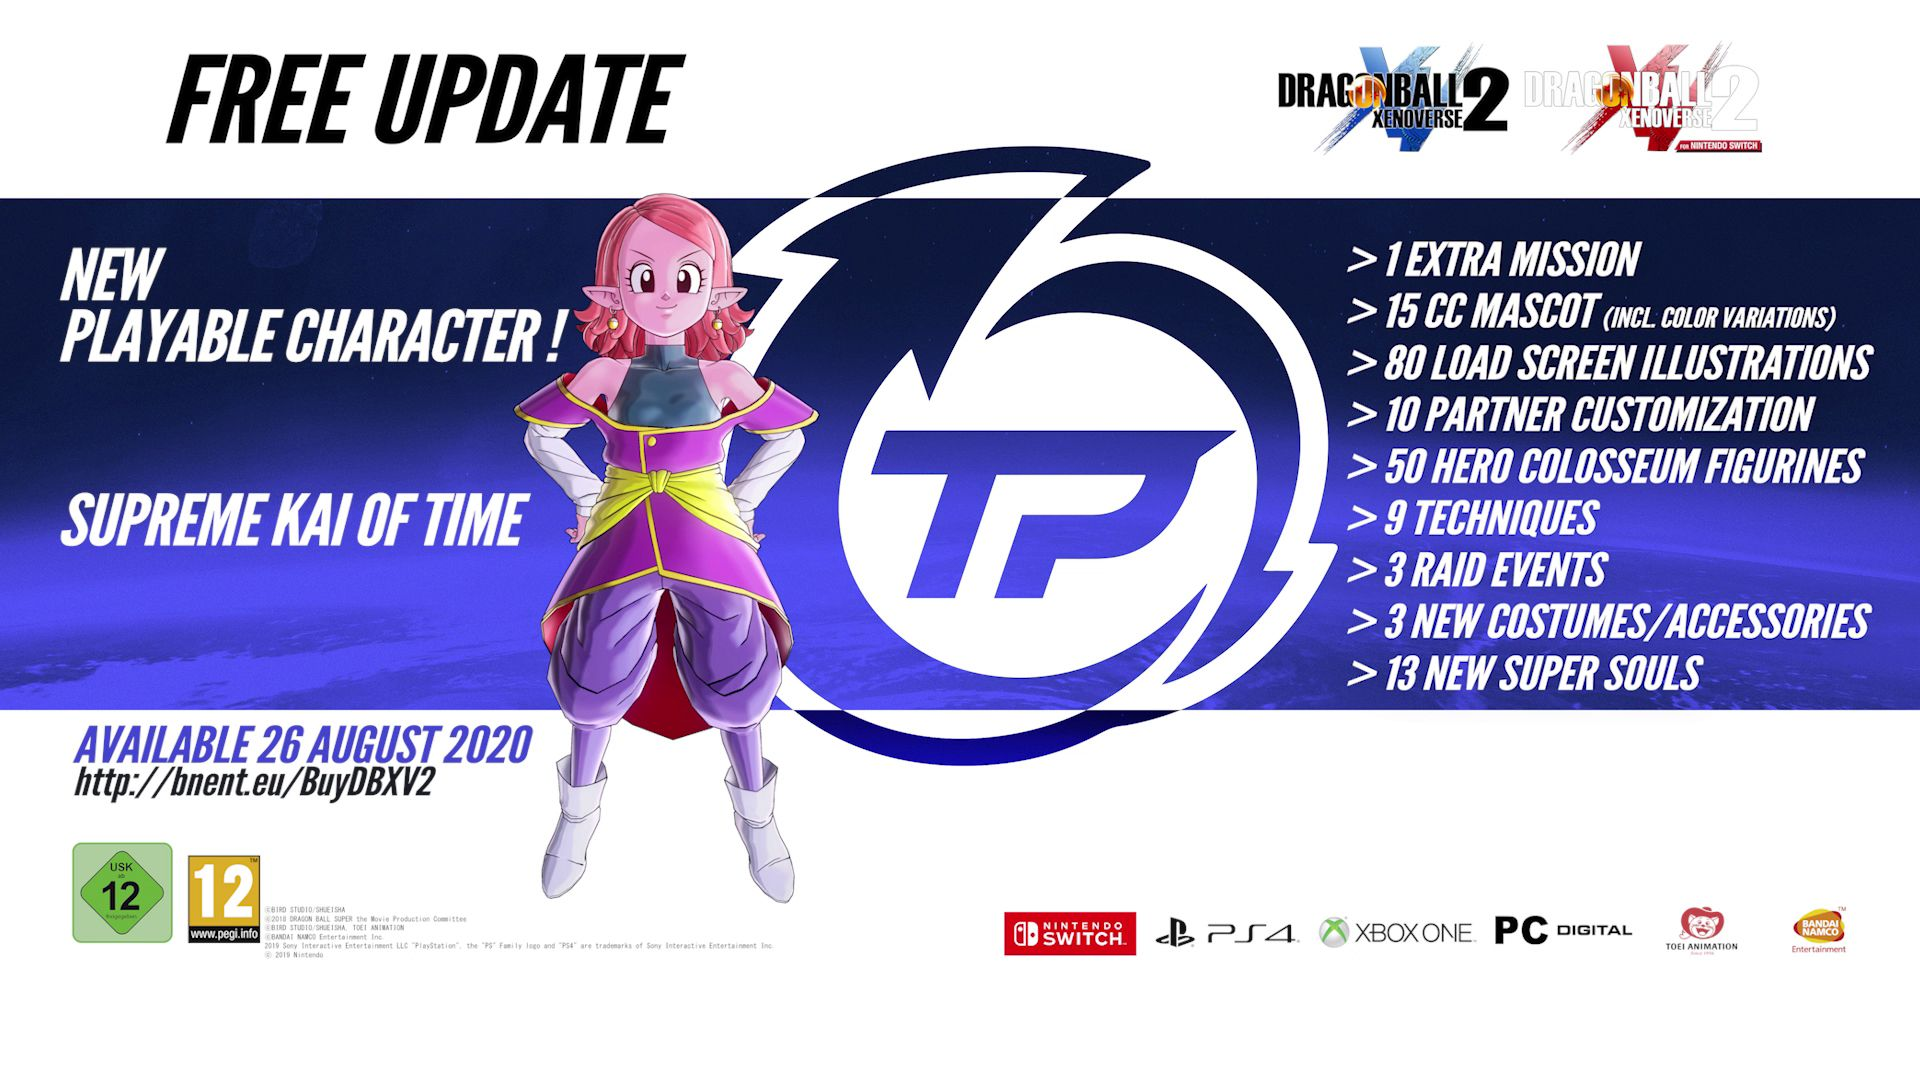 New Christmas Costumes Xenoverse 2 2020 DRAGON BALL XENOVERSE 2 celebrates 6 million copies sold with its